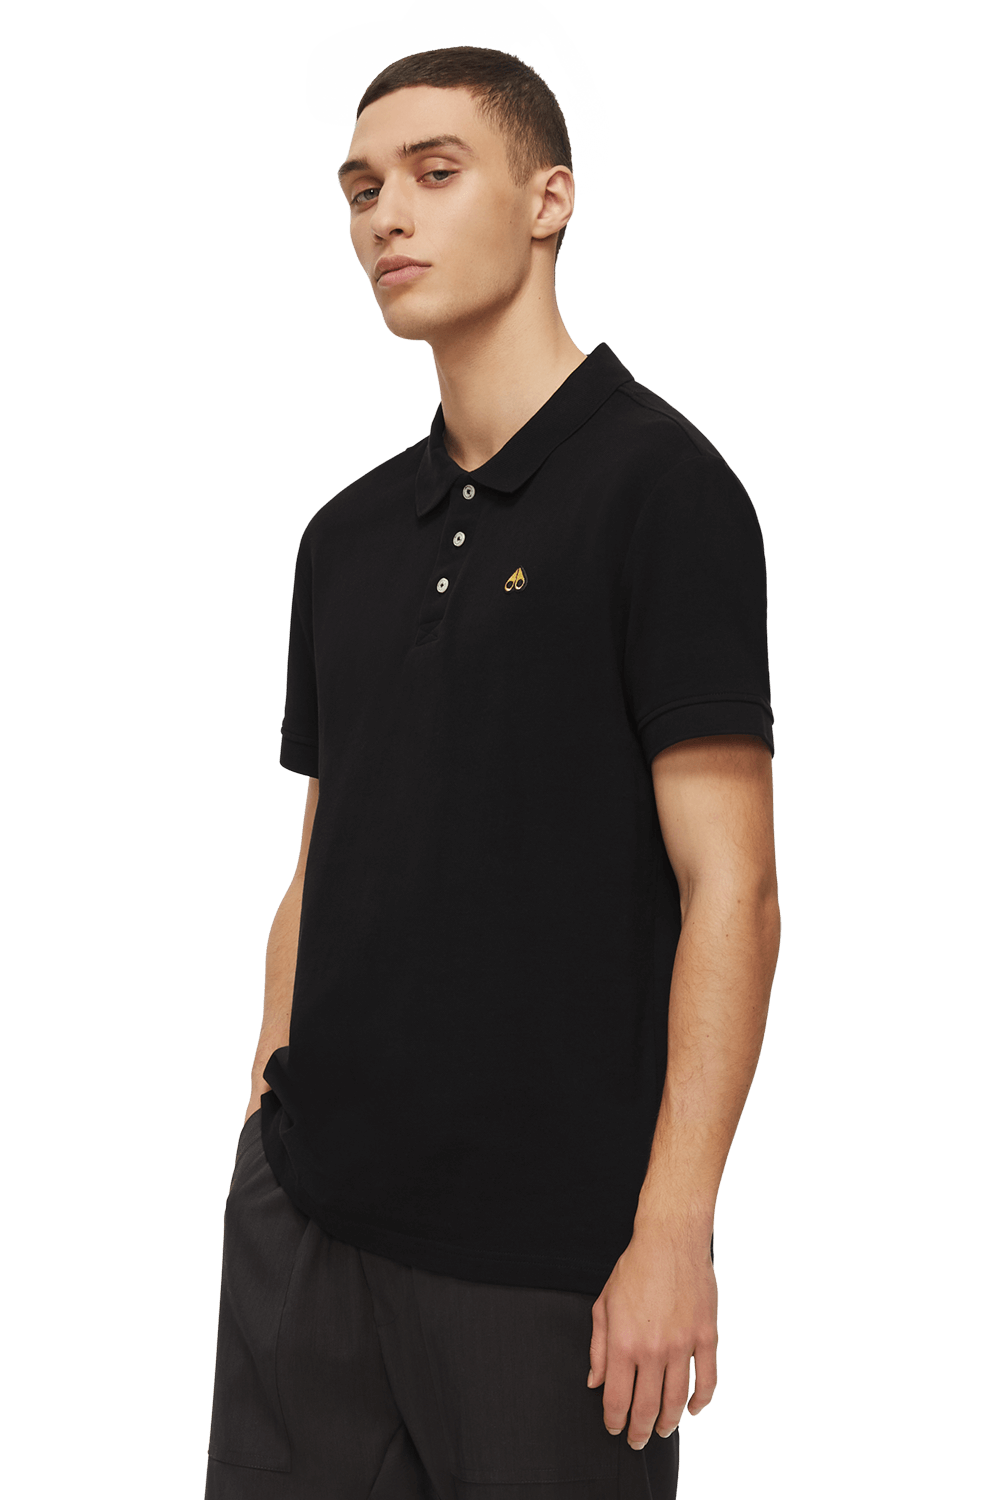 Gold Polo Shirt M11MT712G Black Front